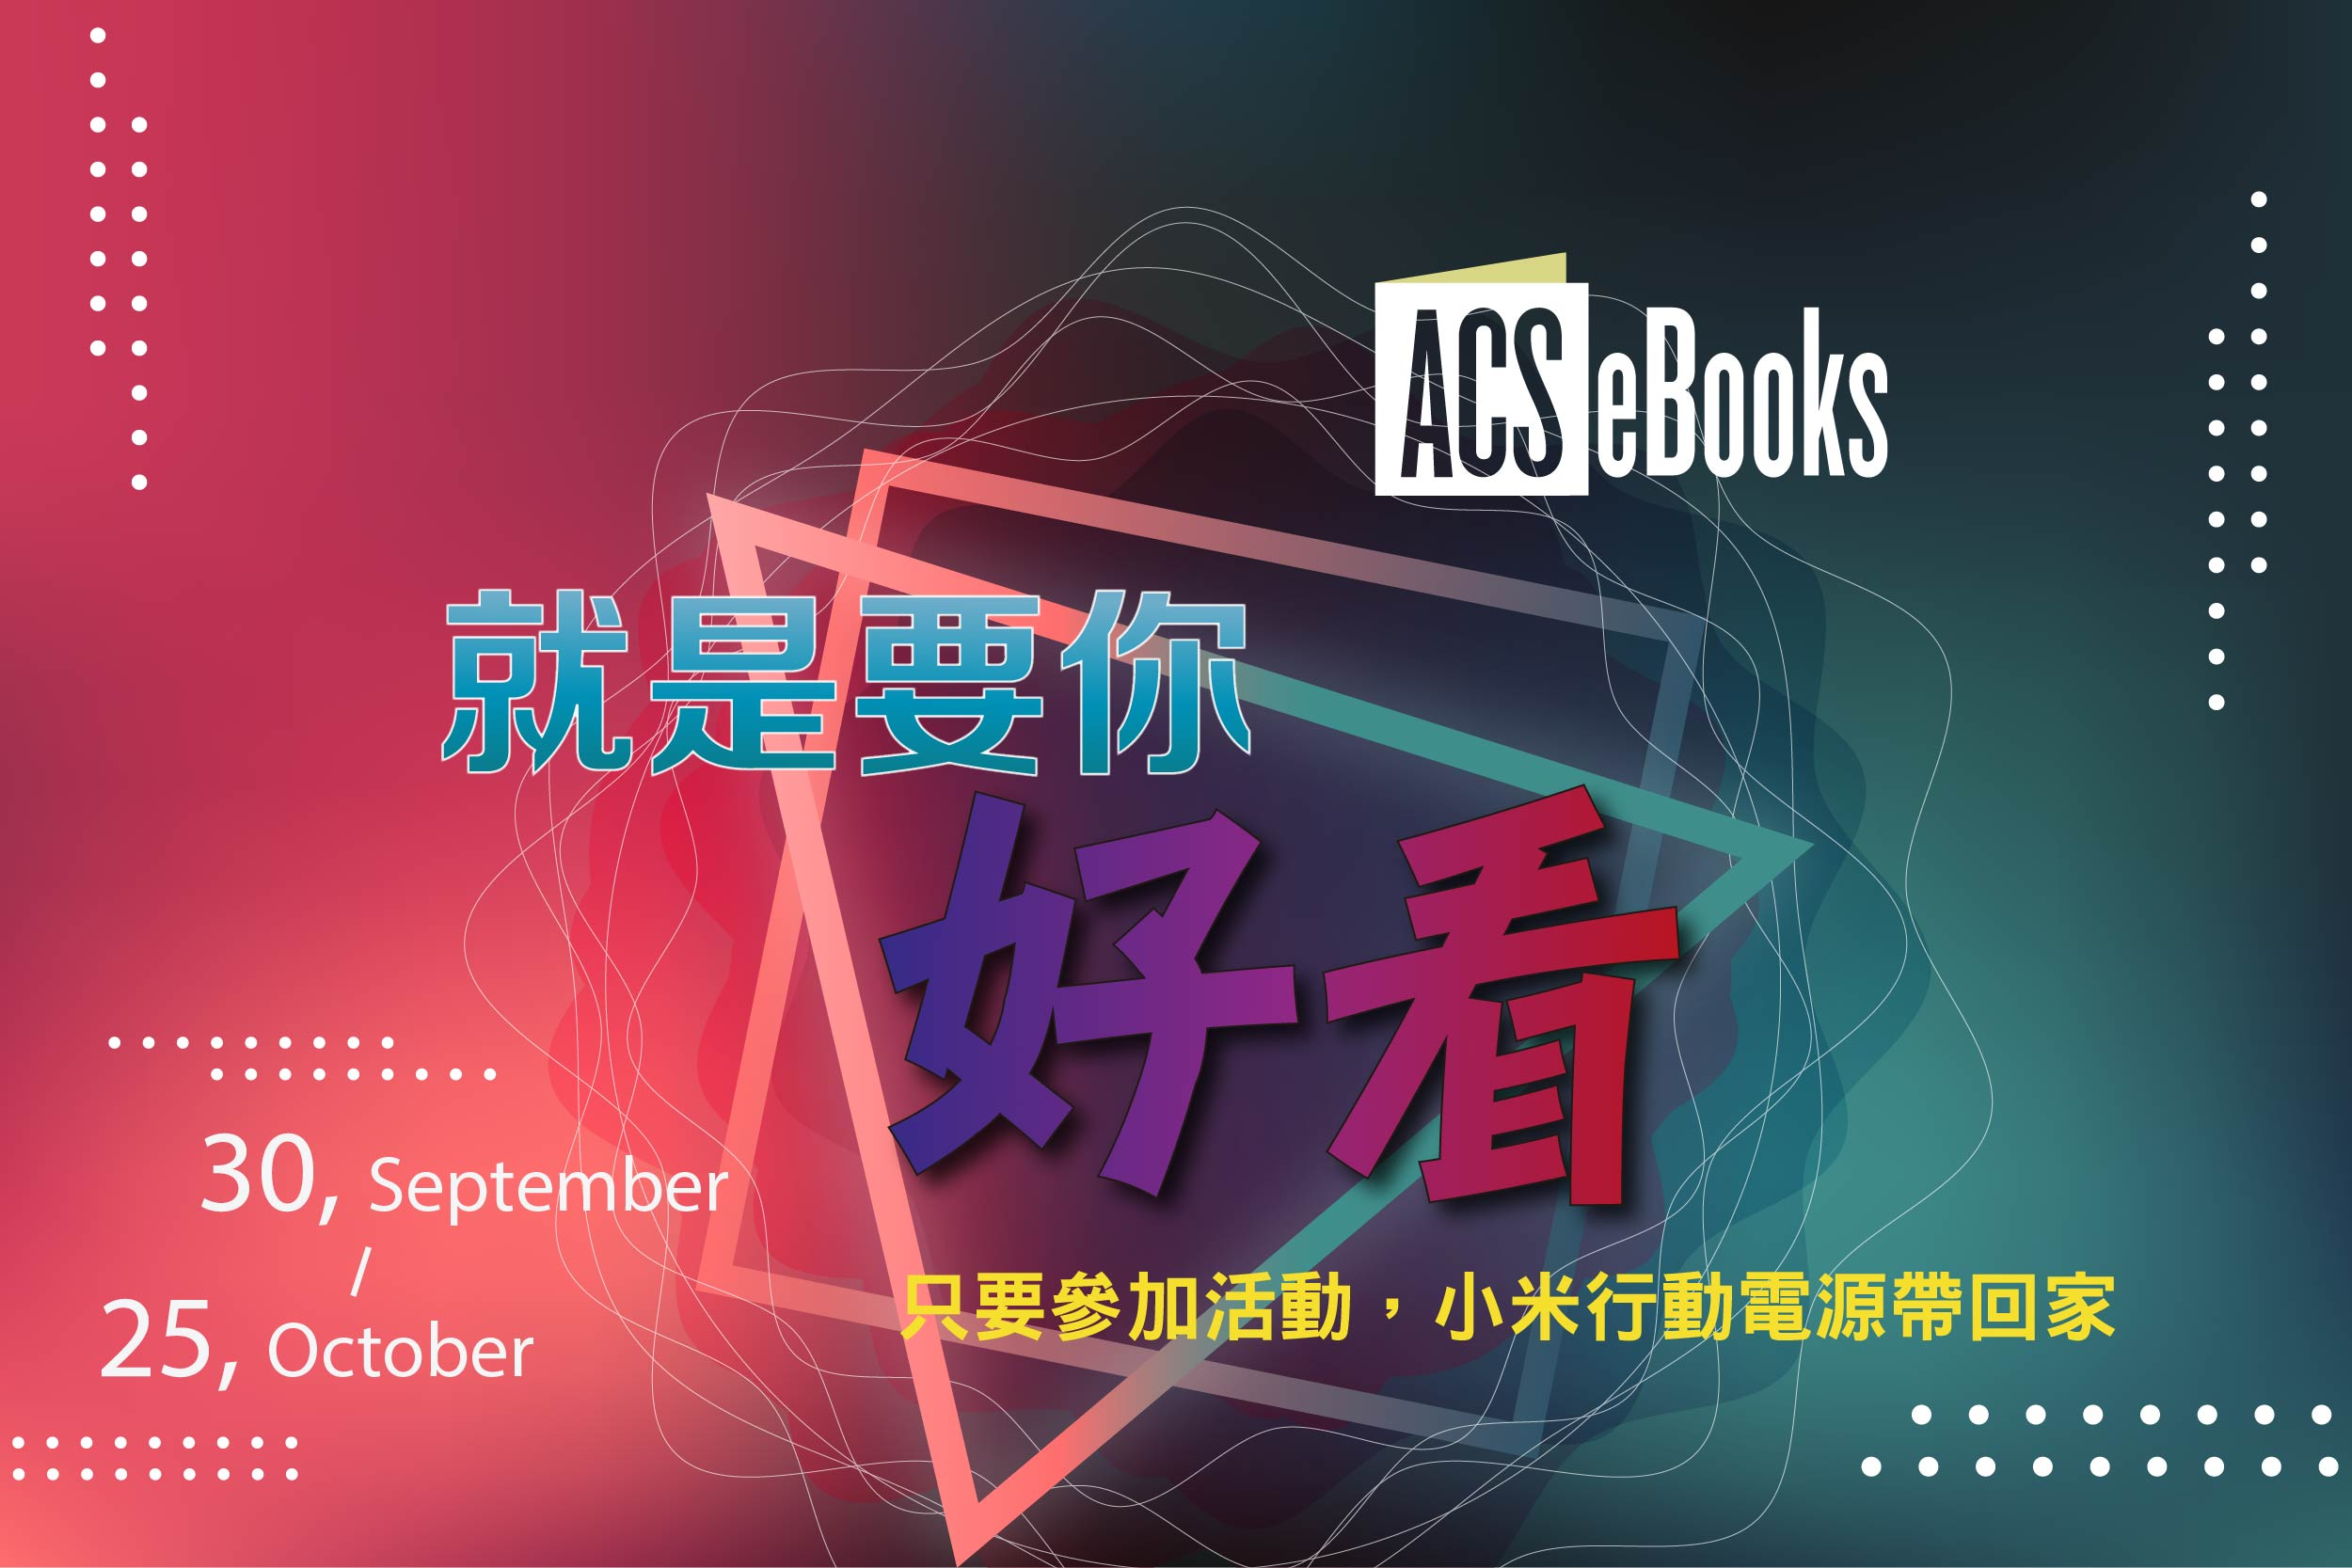 ACS ebooks promotion-01